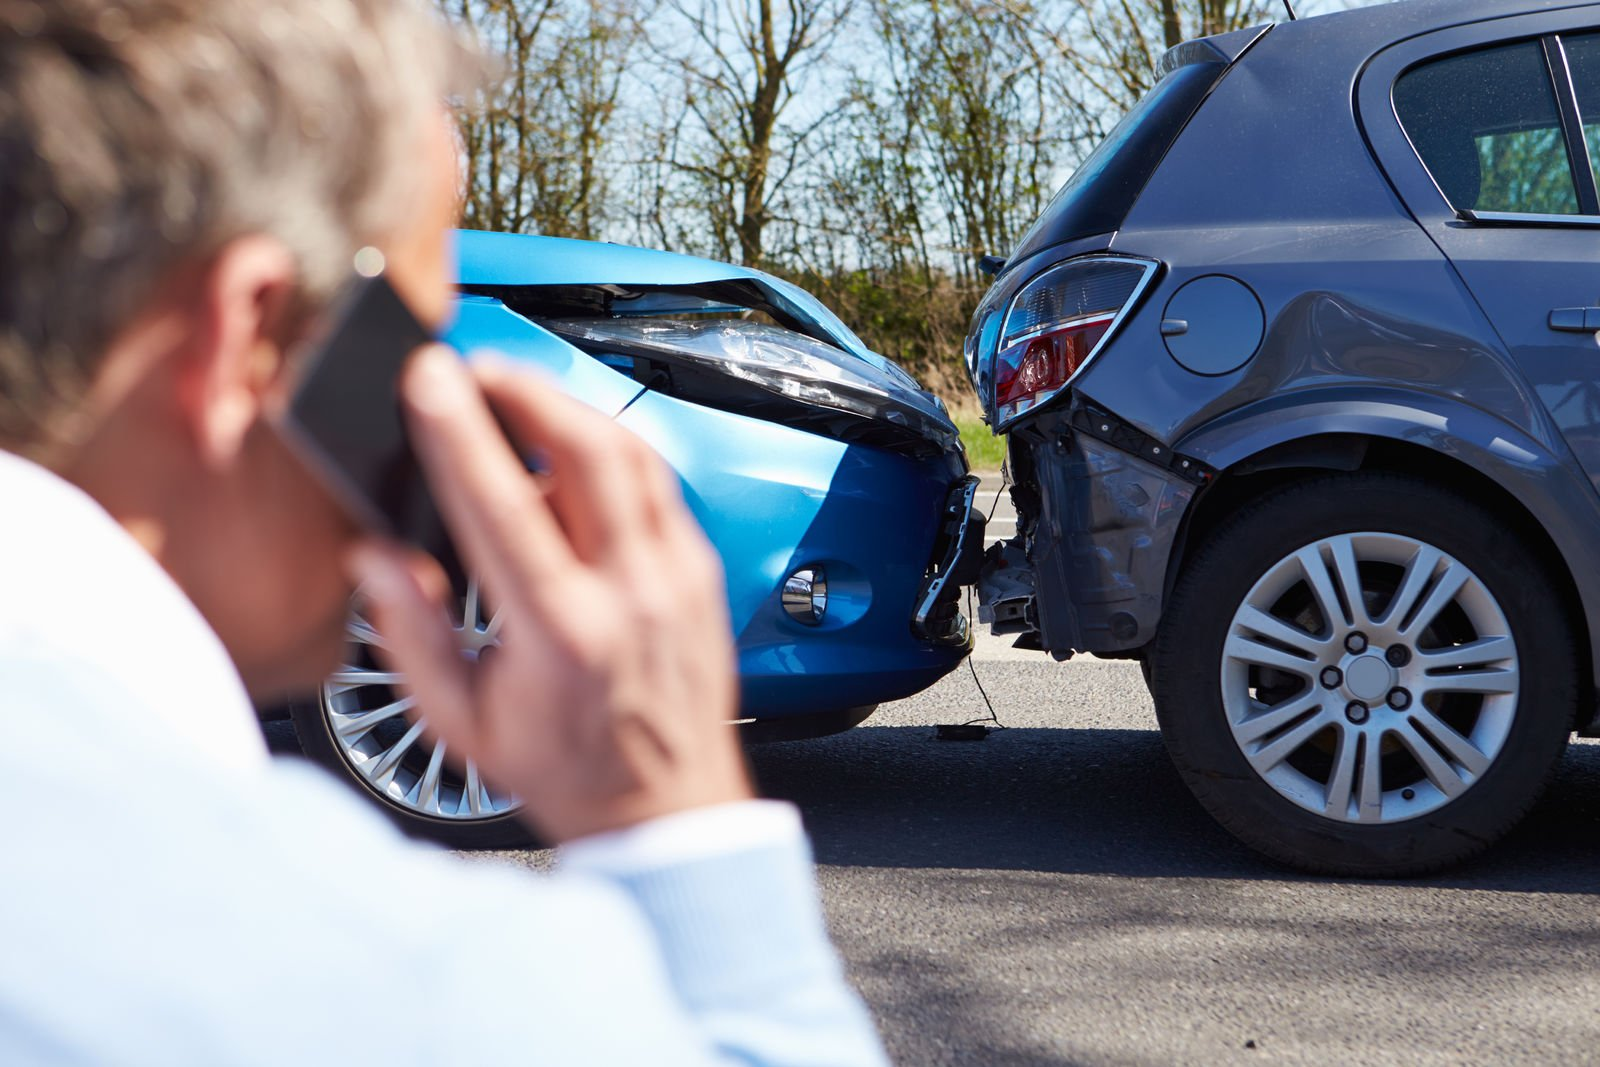 How to Settle a Car Accident Without an Insurance Company